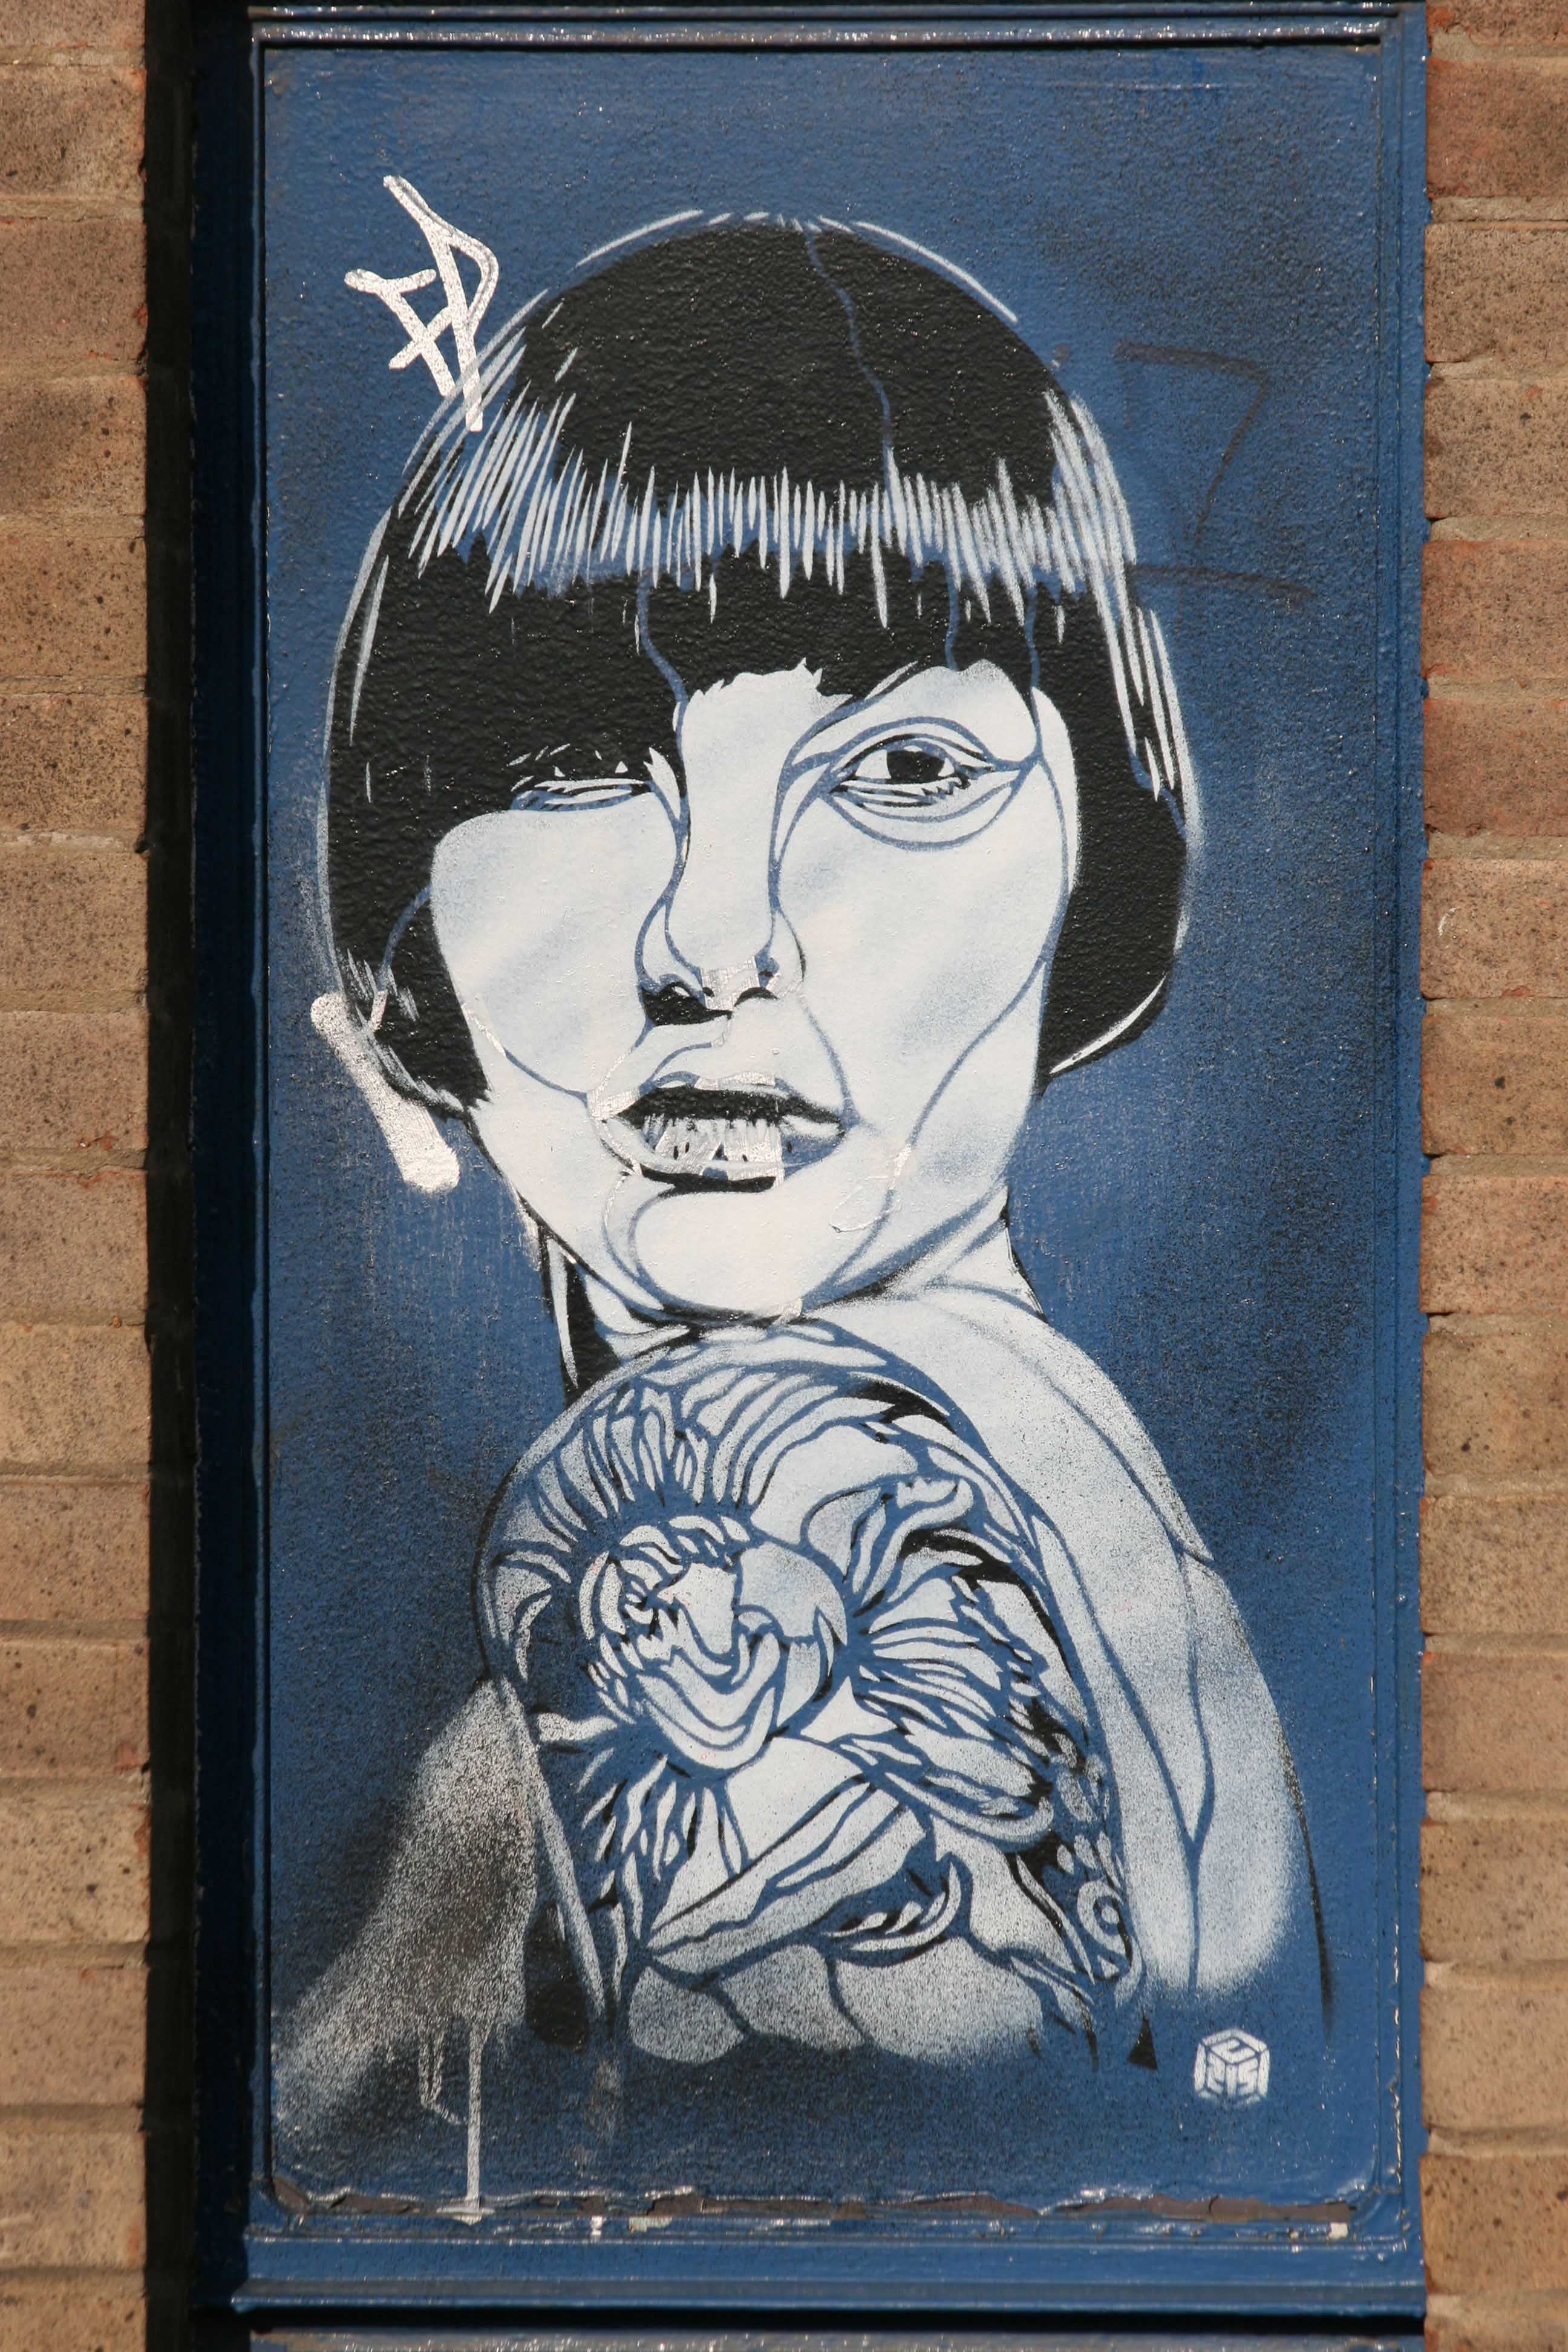 Bob and Tattoo - Street Art by C215 in London